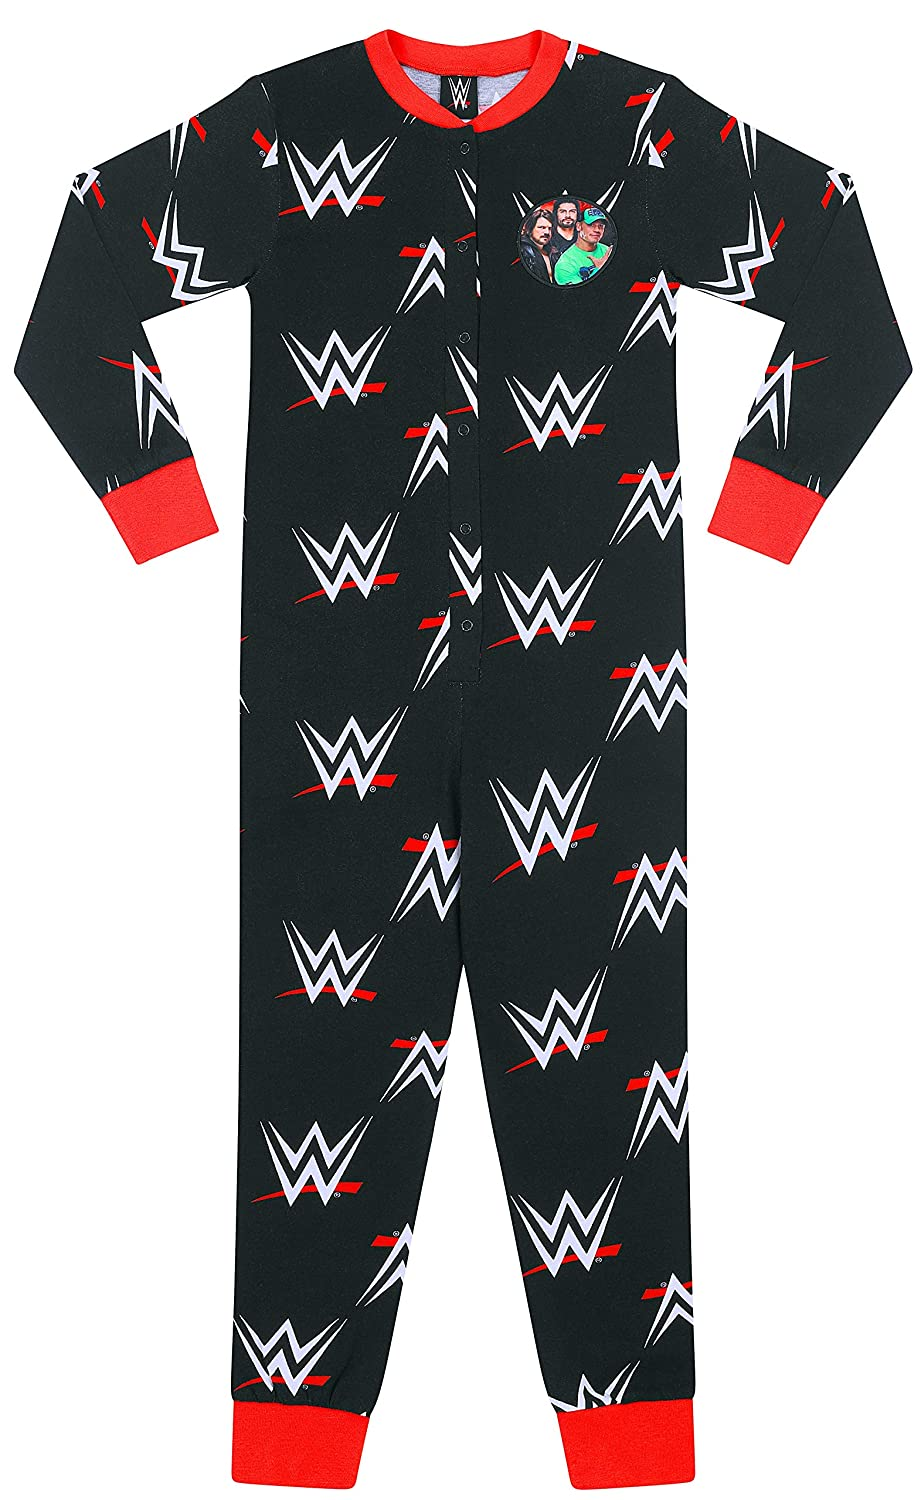 Boys WWE World Wrestling Entertainment All in One Cotton